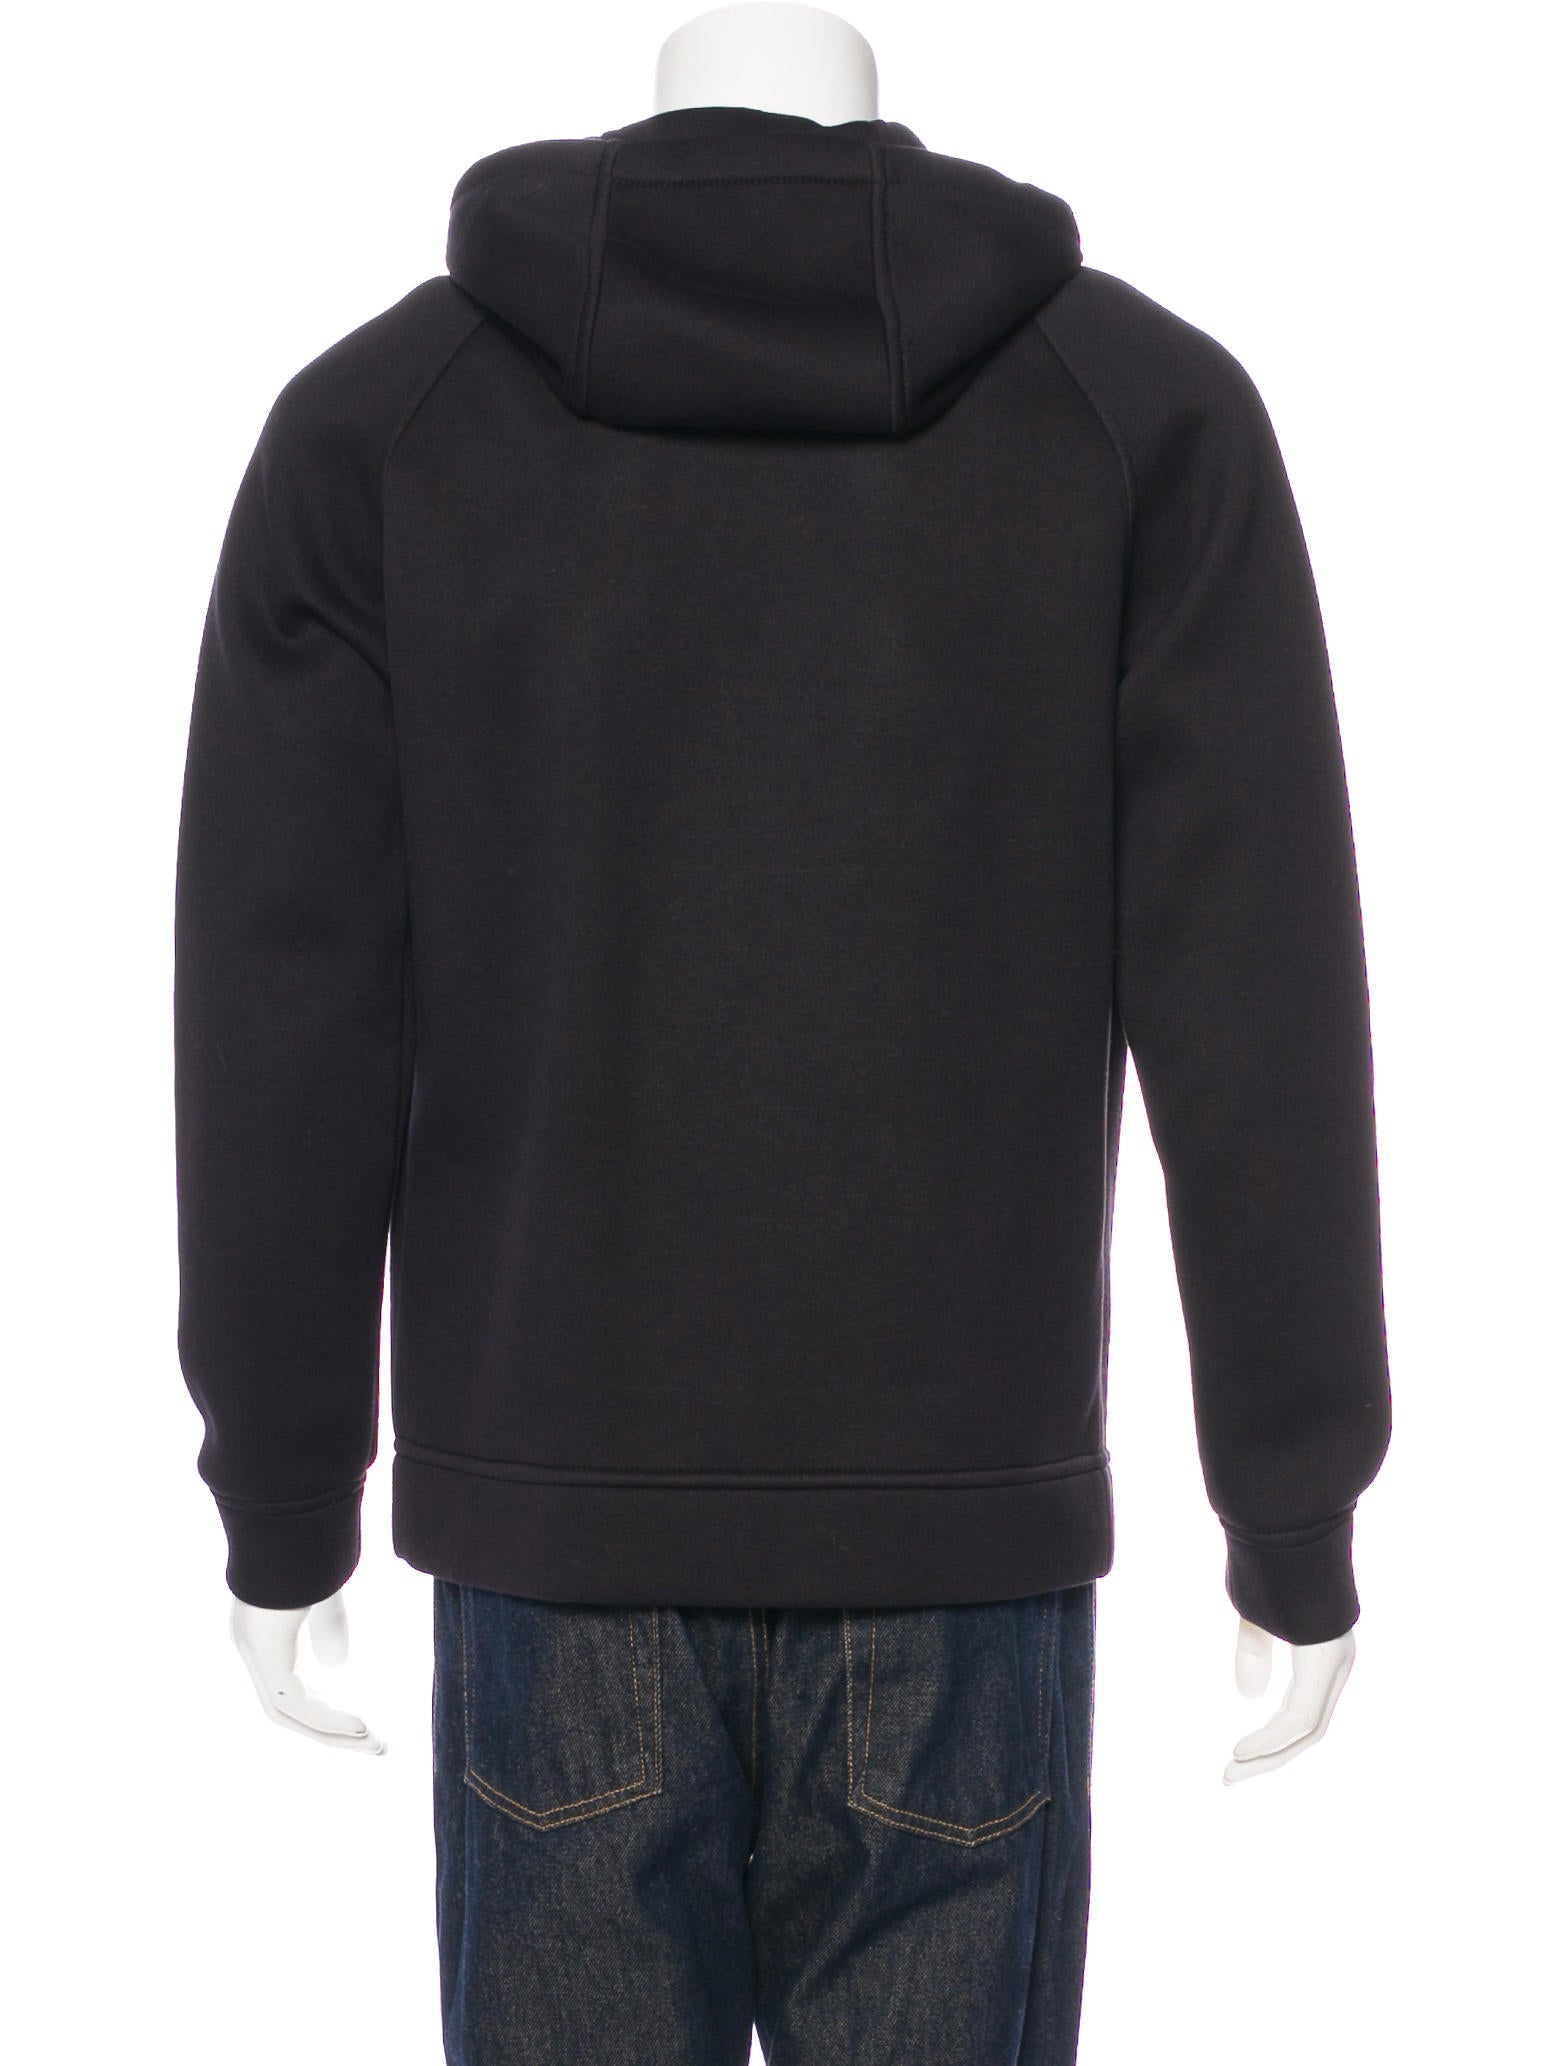 Alexander Wang Zip-Up Hoodie - Clothing - ALX41330 | The RealReal